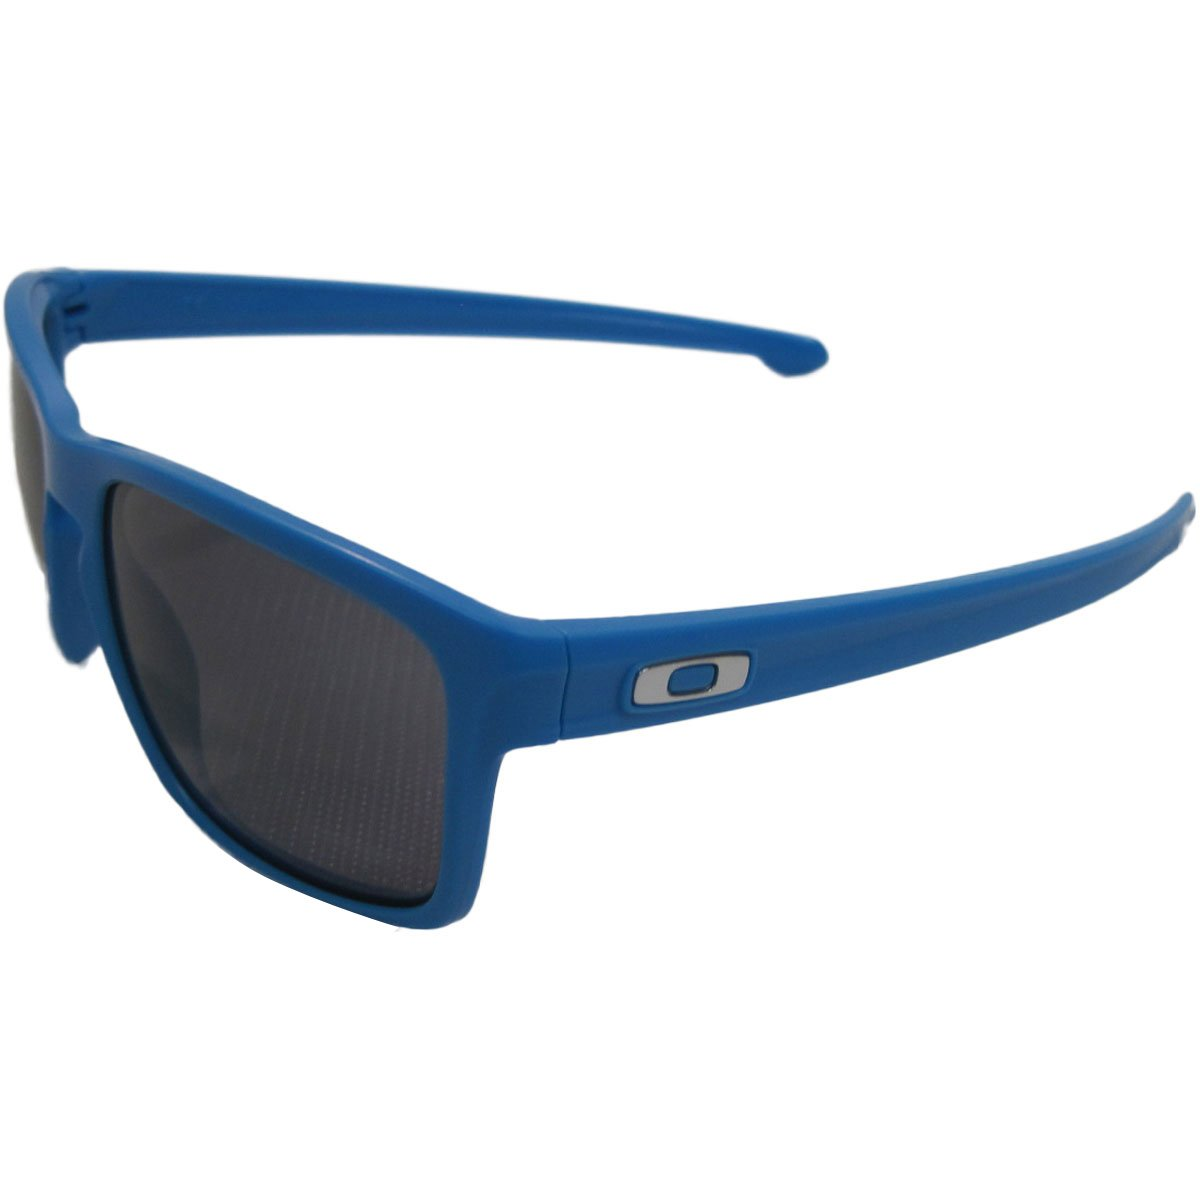 Oakley Men's Sliver Machinist Sunglasses, MttSkyBlue/Grey, OS